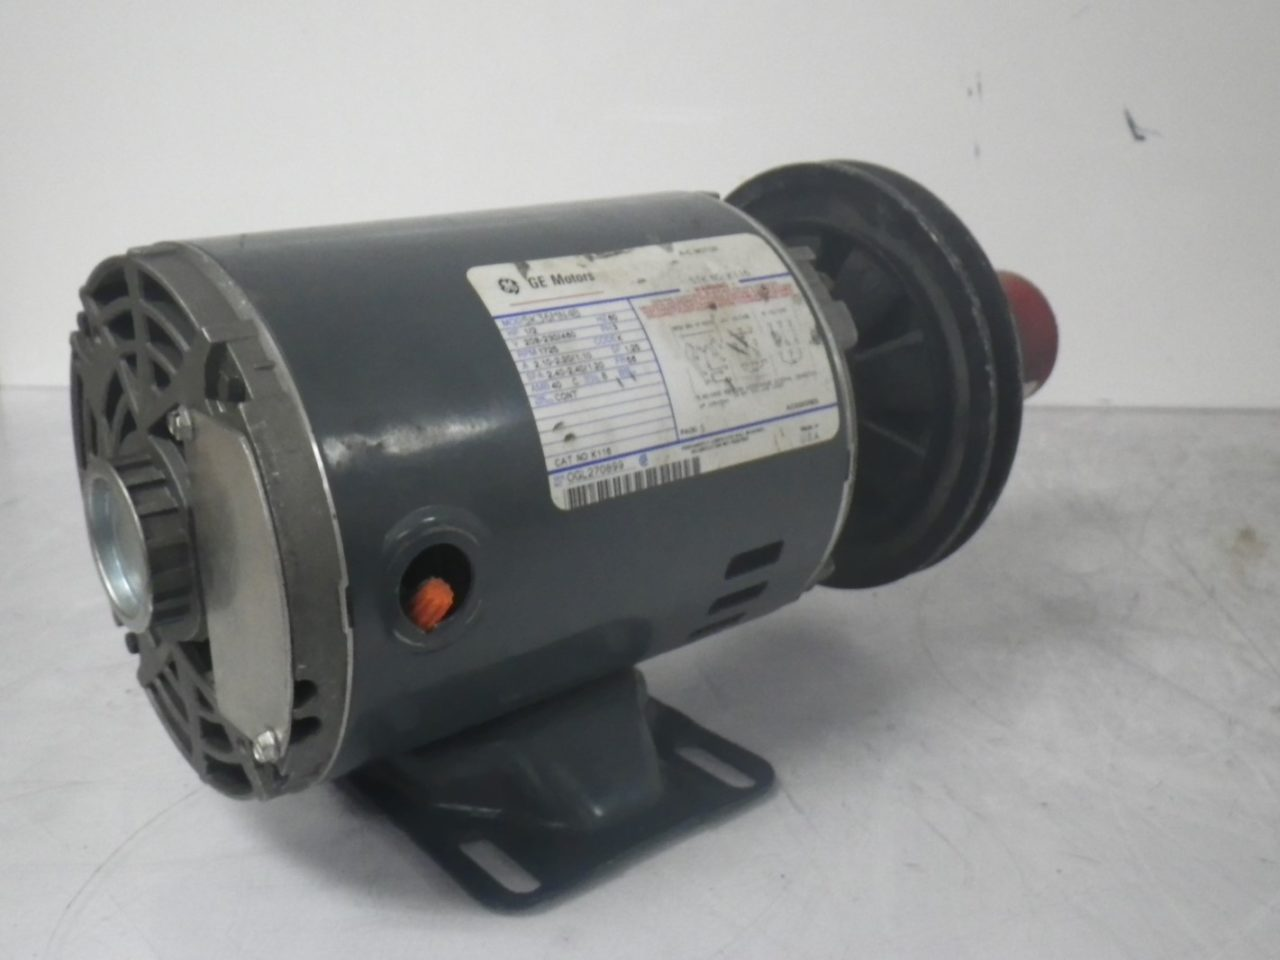 IMGP65595K36MN4B 160 58B GE Motor With LOVEJOY Pulley Type 160 58b 12hp 208-230460v 1725rpm (6)